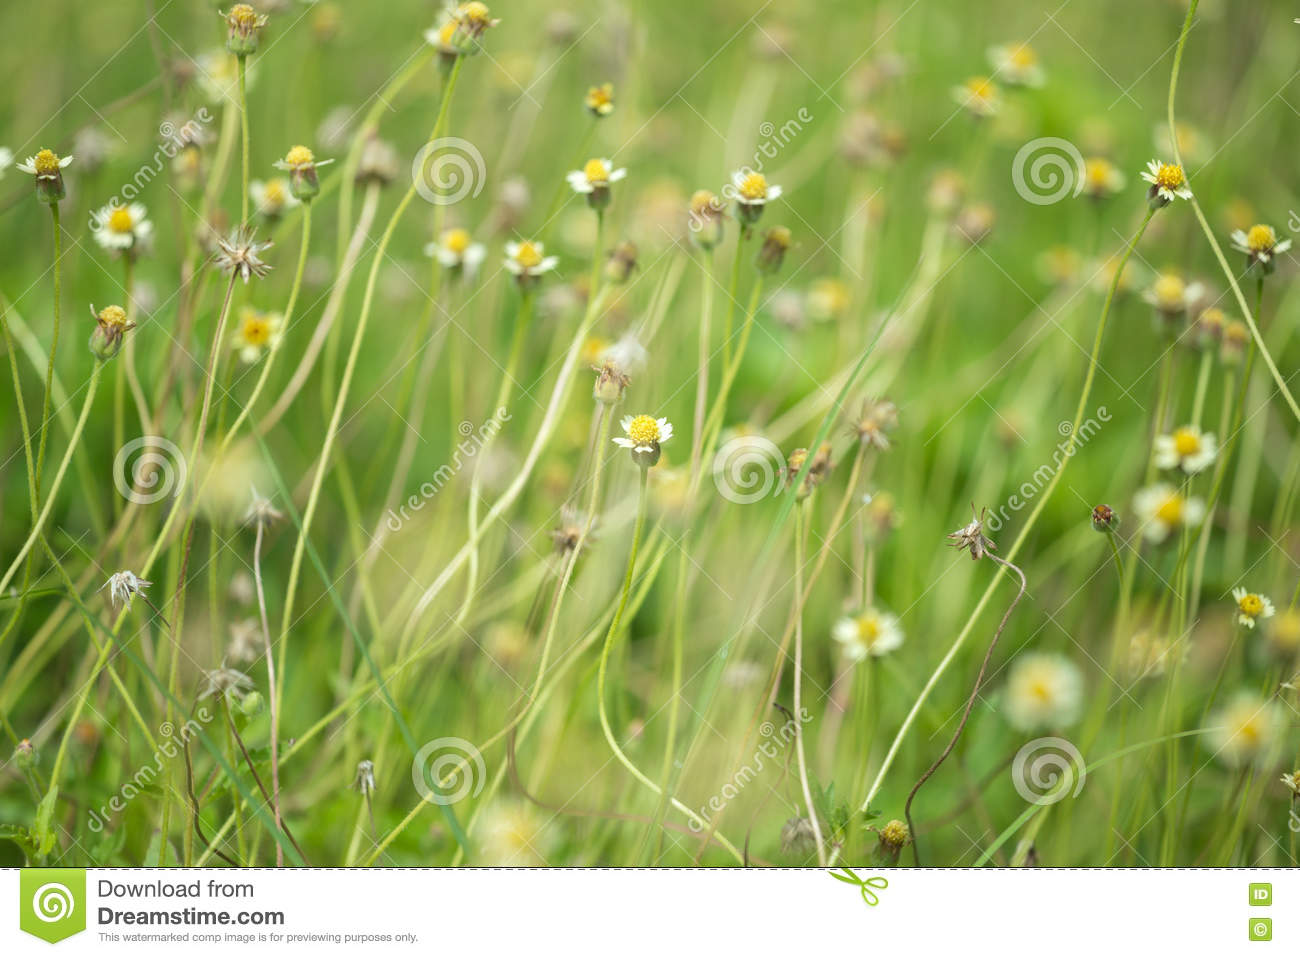 Little White Flower With Yellow Pollen Little Iron Weed Stock Photo